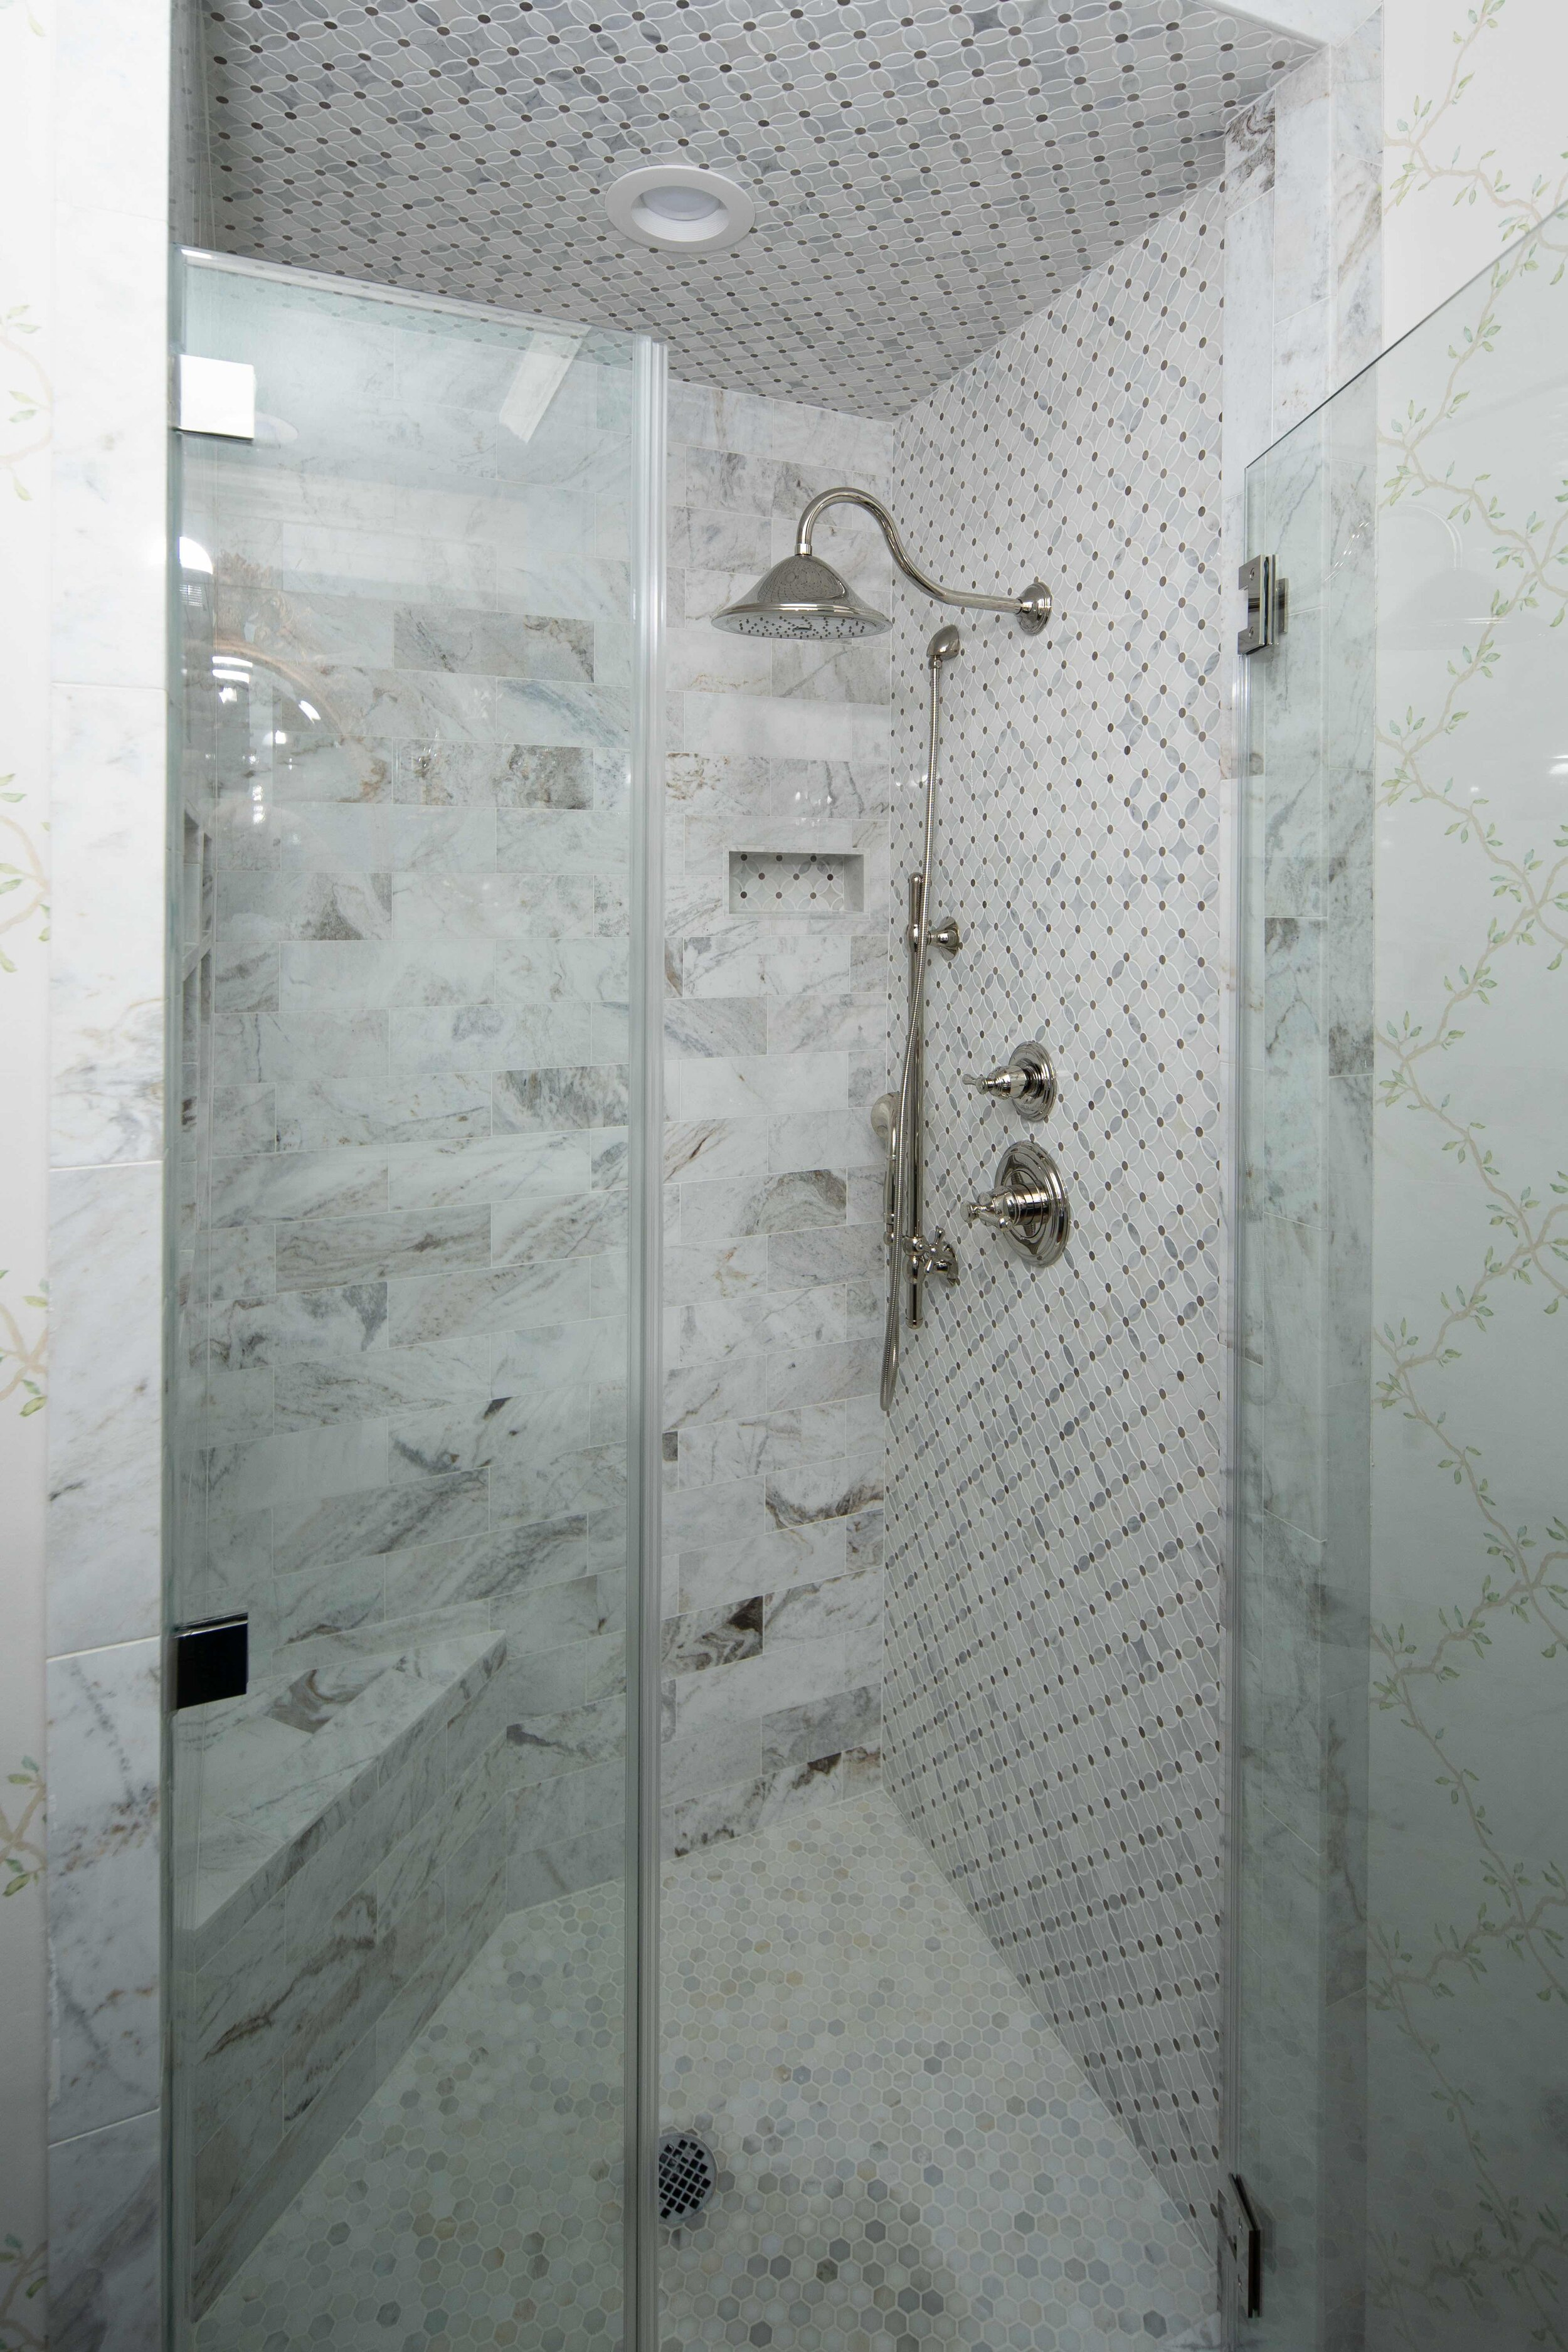 White and grey carrara marble shower renovation. Shower remodel. This walk in shower features a hexagon carrara marble tile rug on the the shower floor. Decorative marble mosaic tile accent wall in shower with. Frameless glass walk in shower is finished with stainless steal finishings. Multiple shampoo niches for convenient storage of shower items.